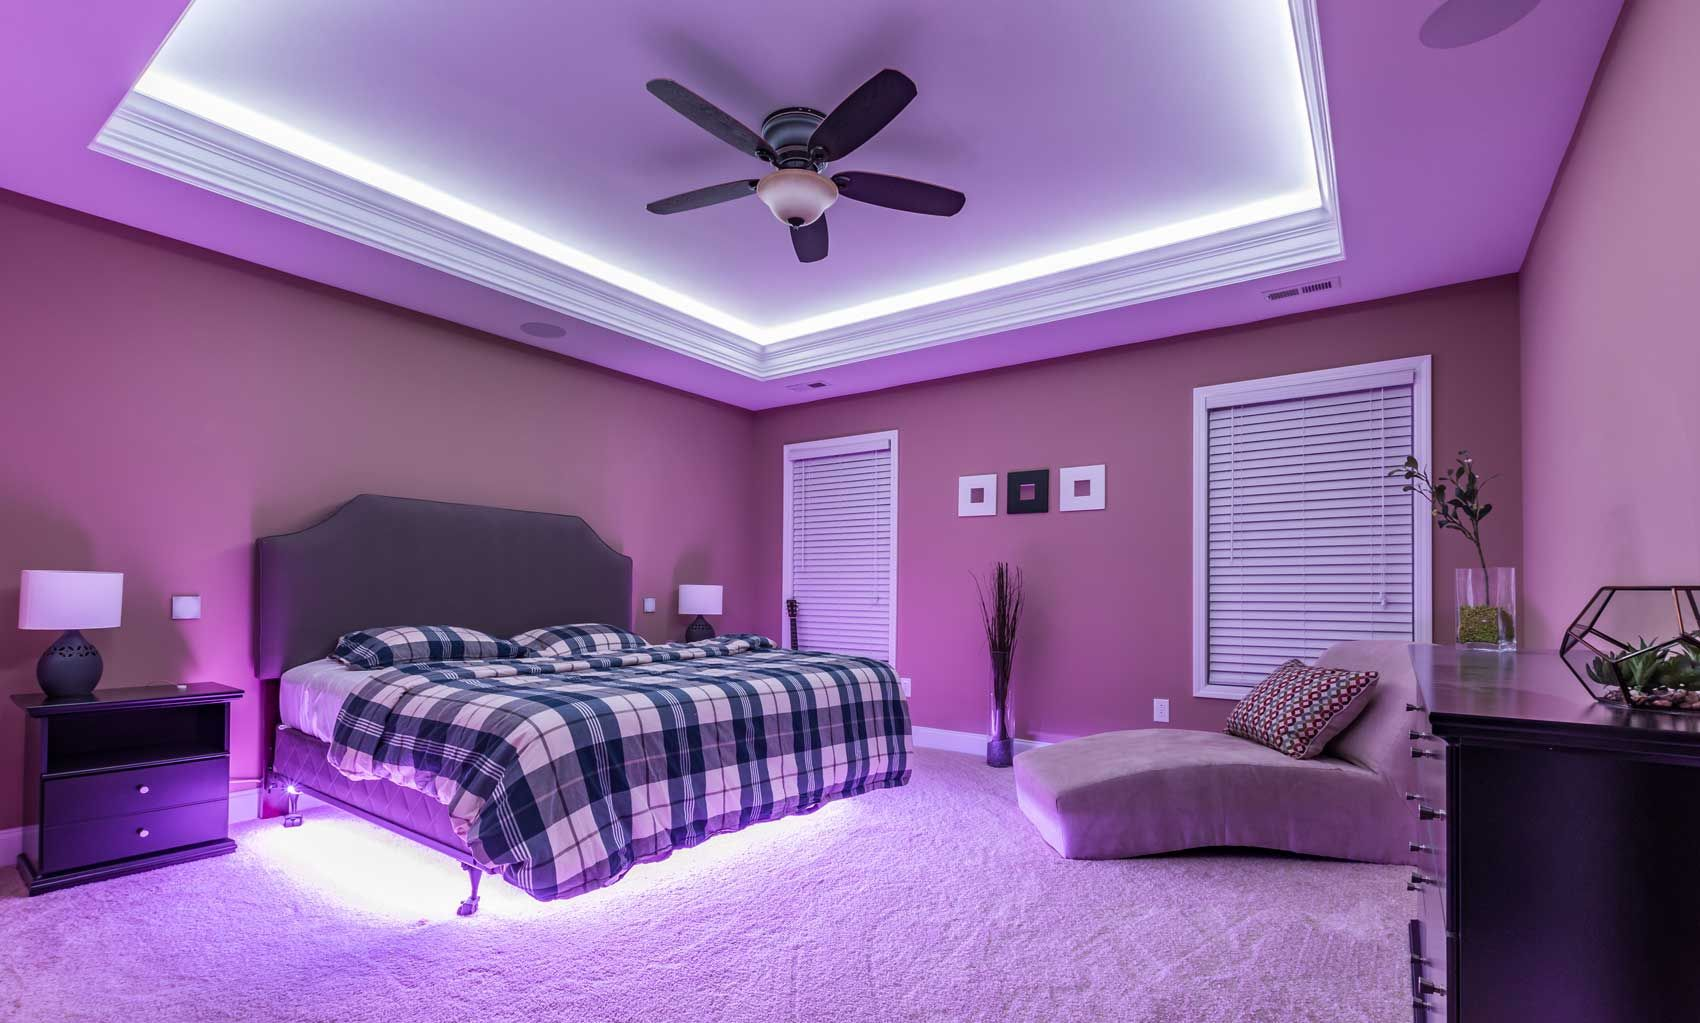 Ambient Lighting Utilize Led Lights To Set The Mood Of Your Smart Home Led Lighting Bedroom Mood Lighting Bedroom Strip Lighting